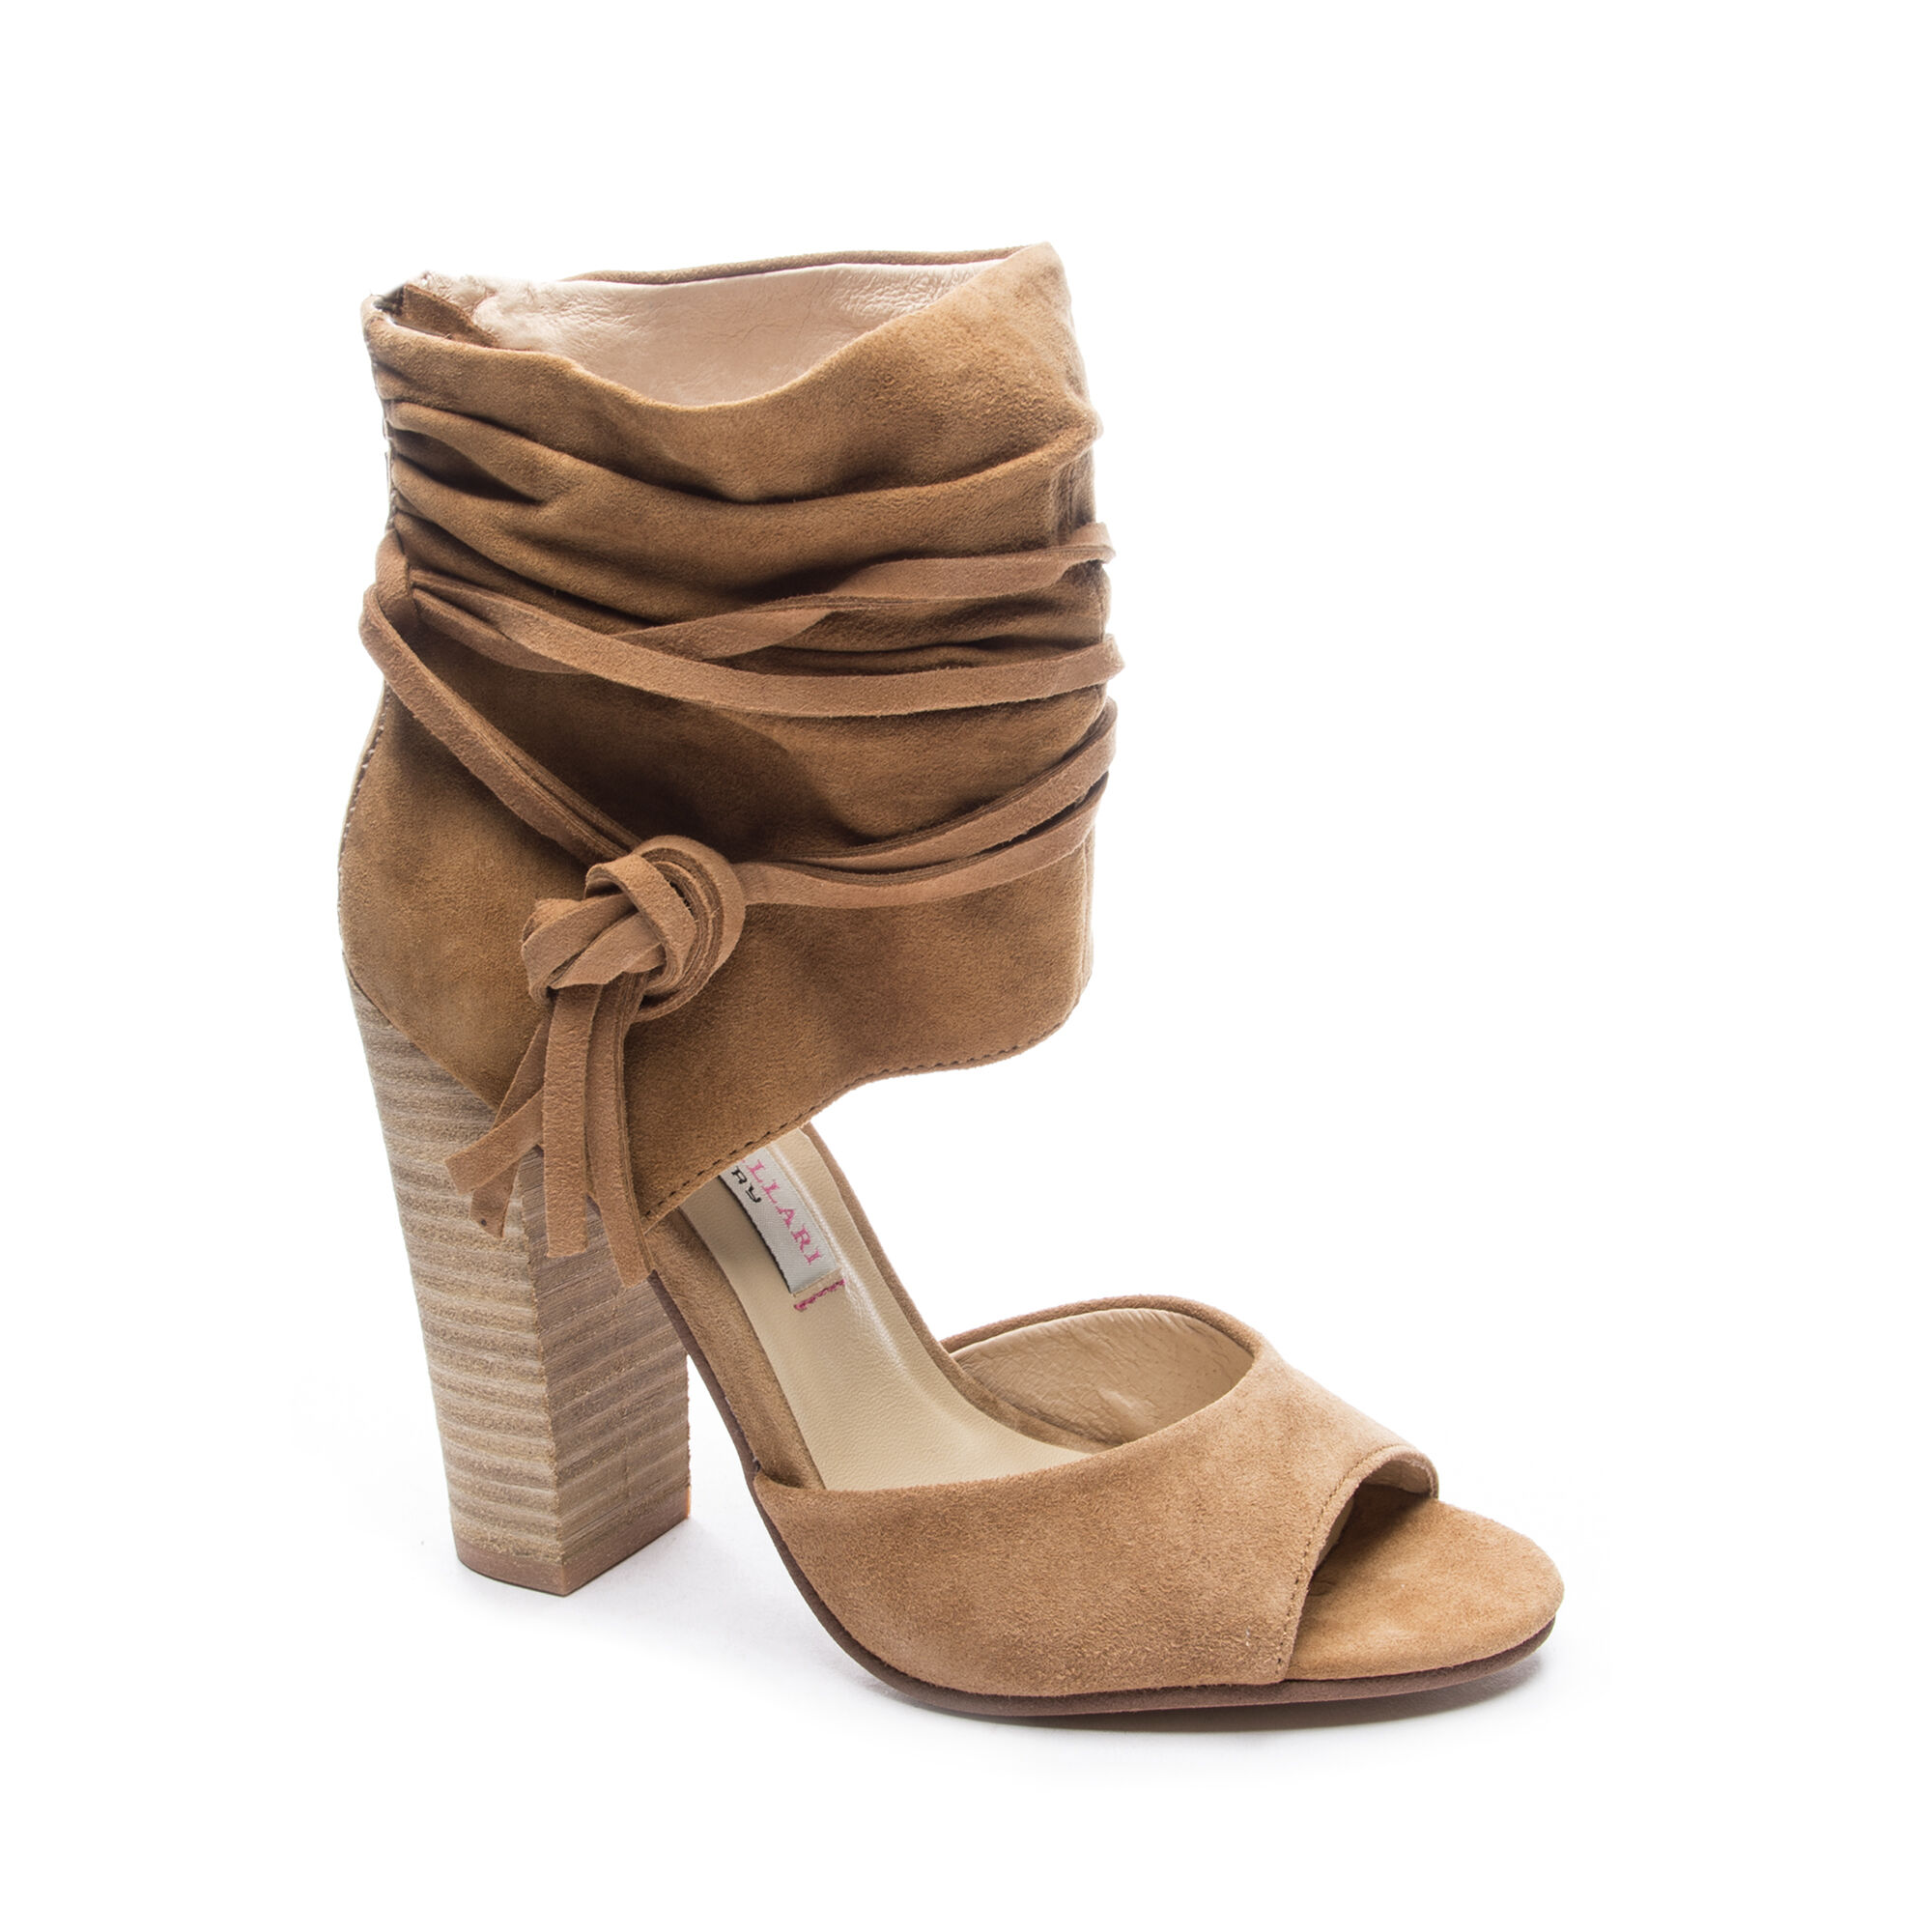 Leigh 2 Suede Two-Piece Sandal